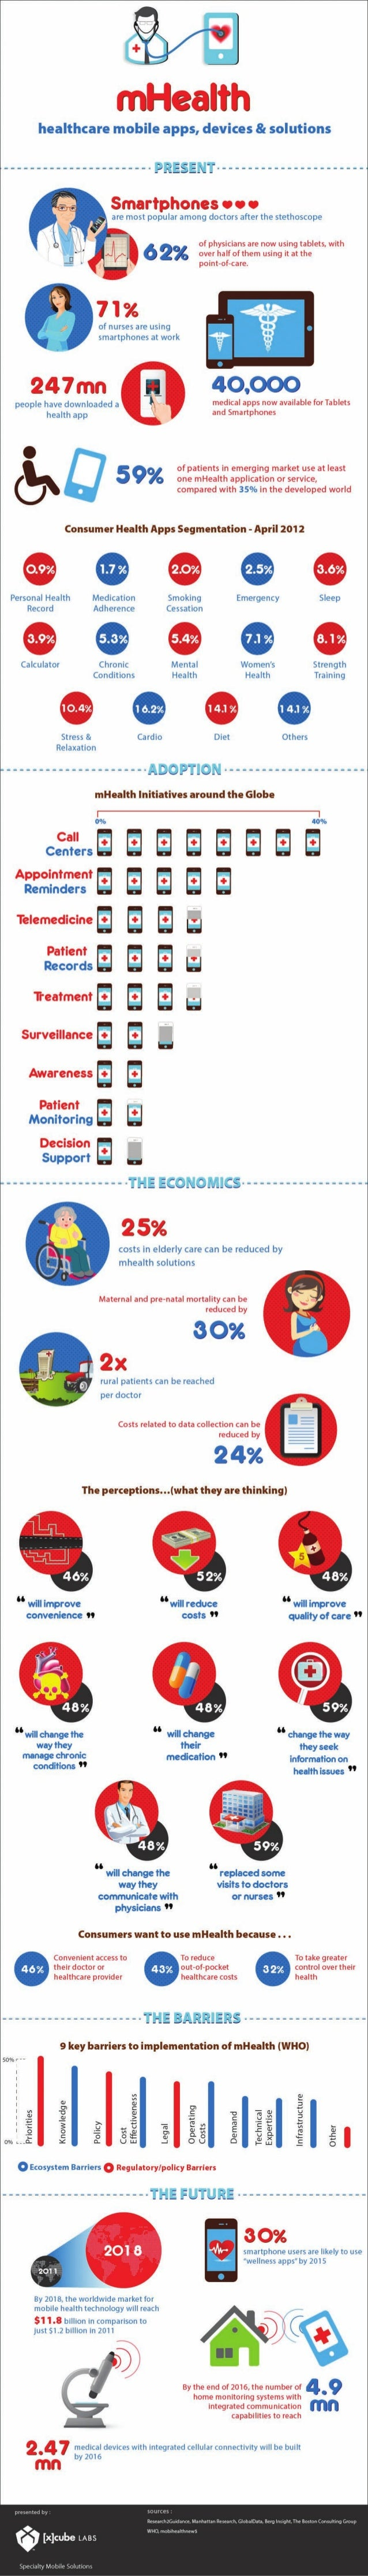 Mhealth - Healthcare apps, devices and solutions